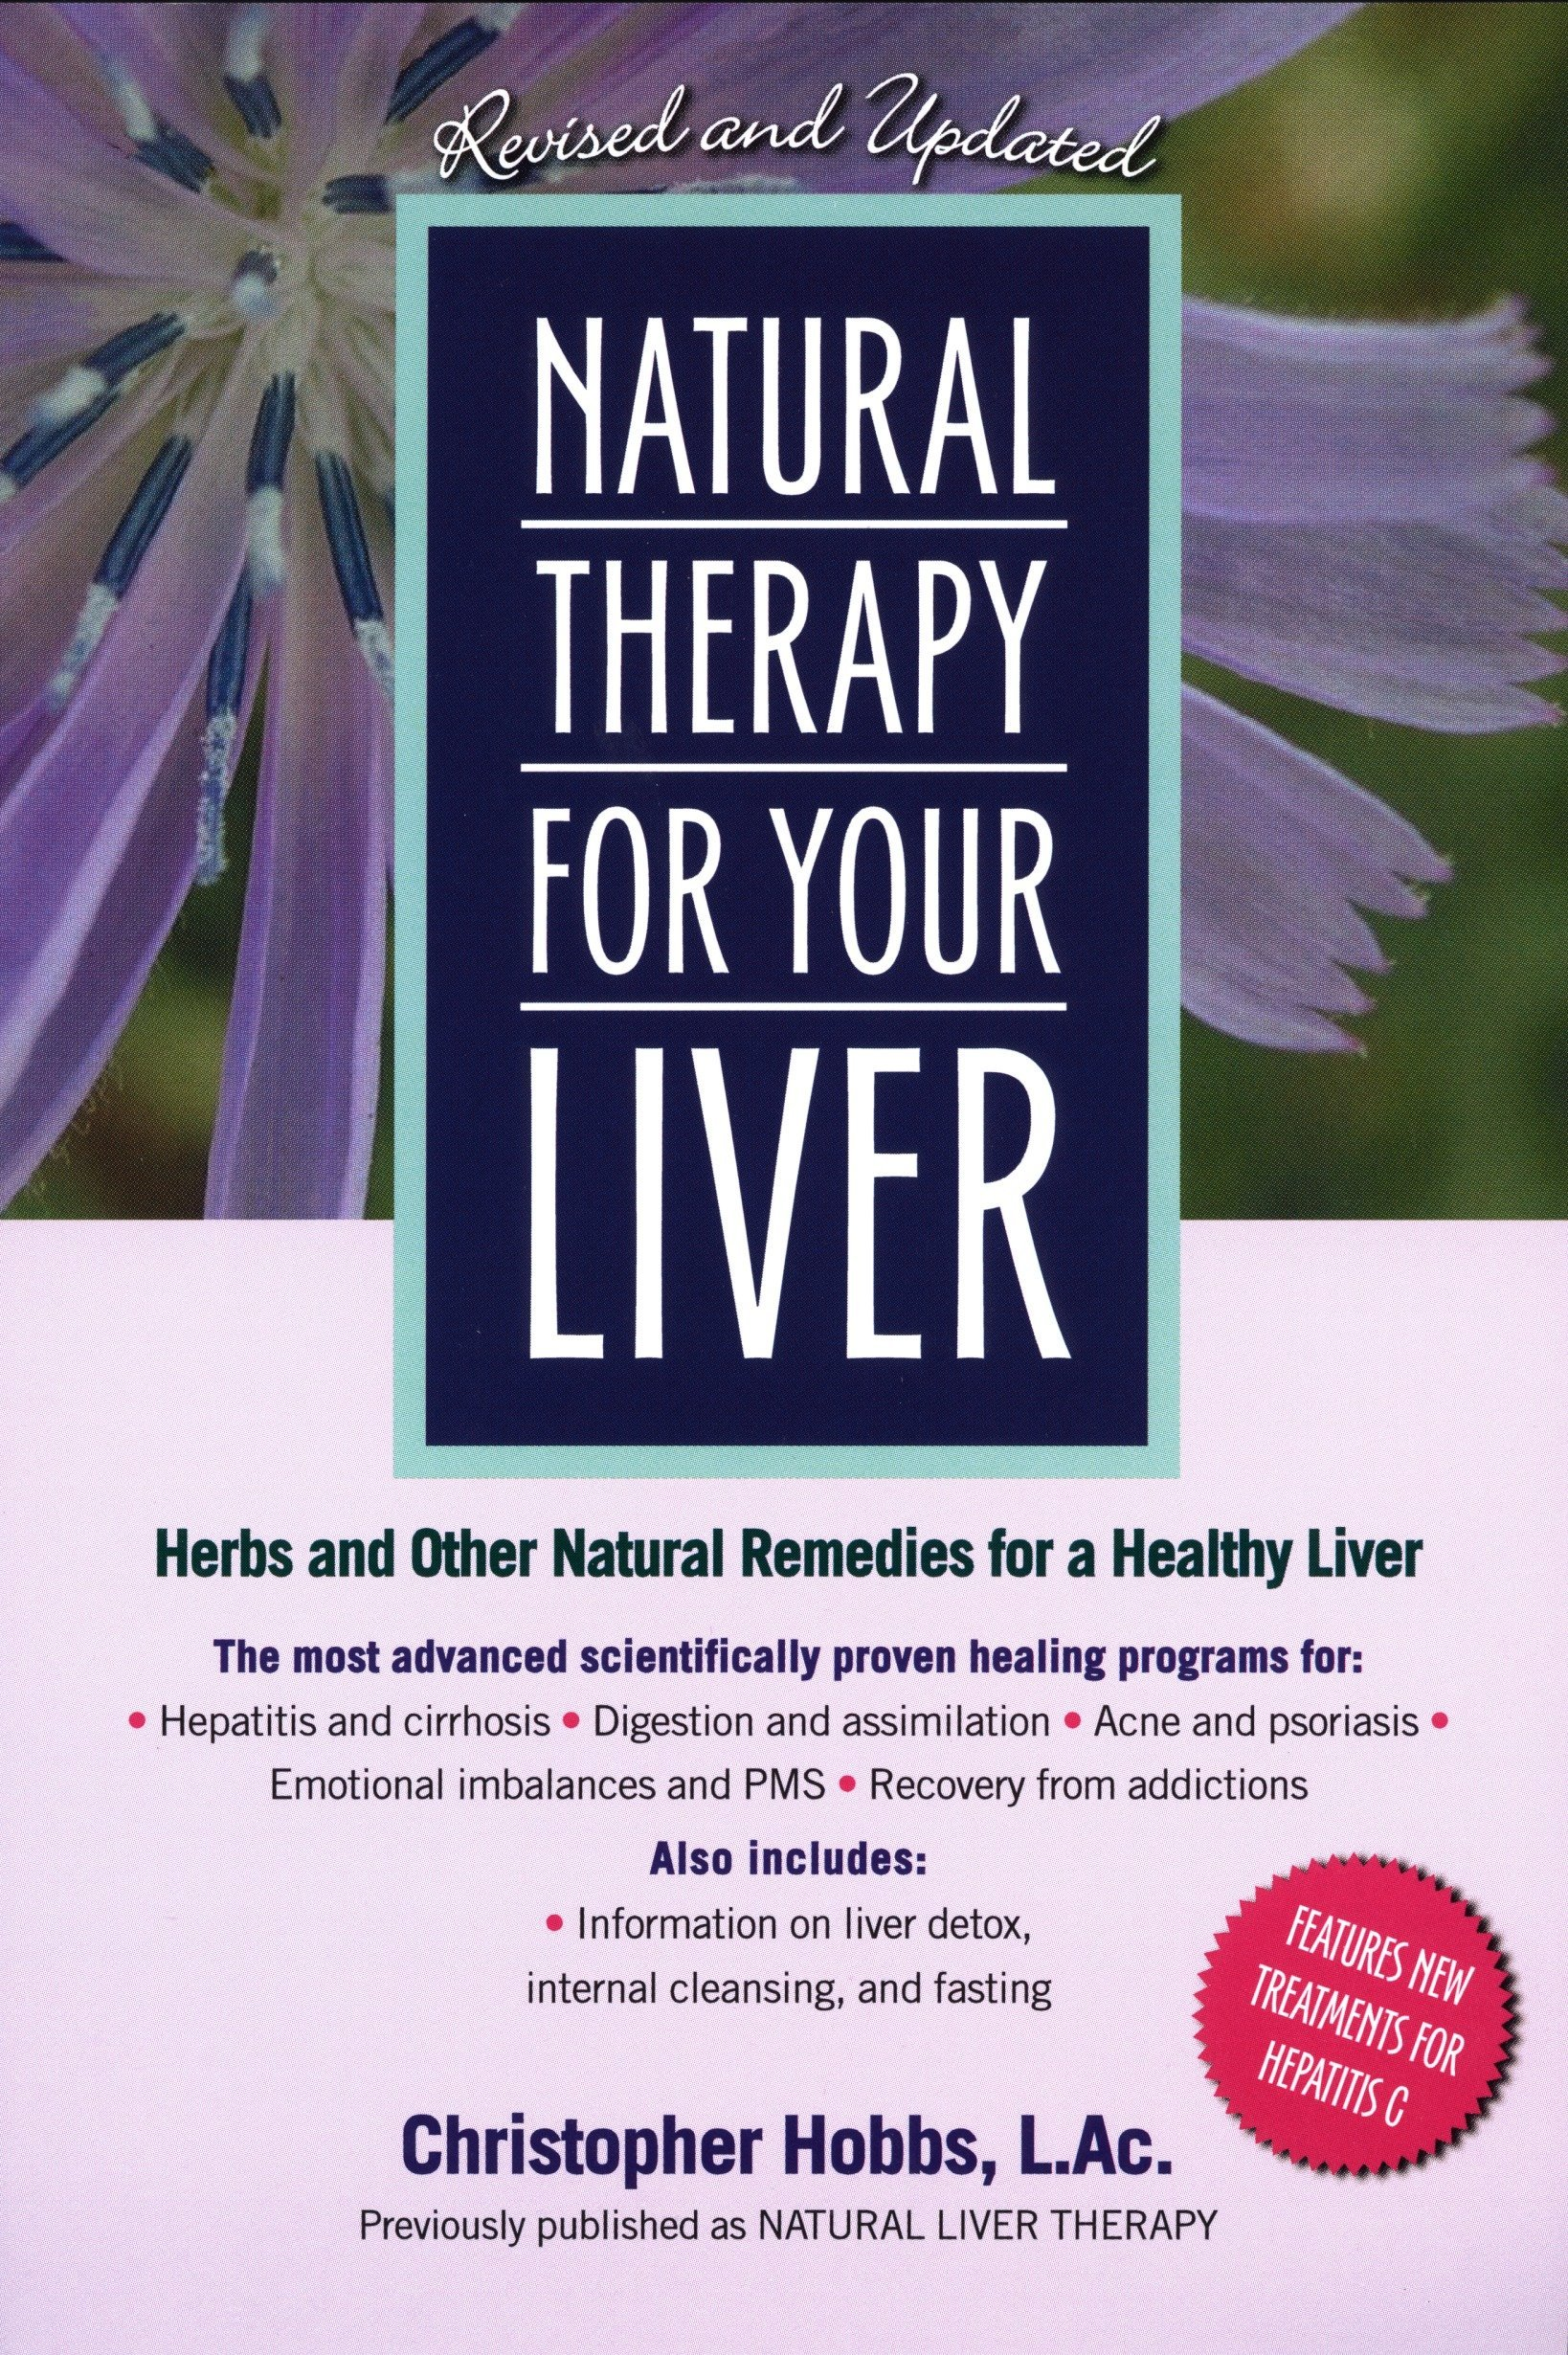 Natural Therapy for Your Liver - by Christopher Hobbs, L.AcWritten by one of the world's most prominent herbalists, Natural Therapy for Your Liver offers practical, up-to-date information about effective ways to regain and maintain optimal liver health. As liver disease has skyrocketed to the fourth leading cause of death in the United States, this timely guide is needed more than ever. The book details: clinically tested herbal remedies for a variety of liver-related ailments, from hepatitis C and cirrhosis to acne and PMS; therapeutic liver flushes, cleanses, and other natural methods for maintaining liver health; specific dietary recommendations for ten different liver-related disorders, and much more.